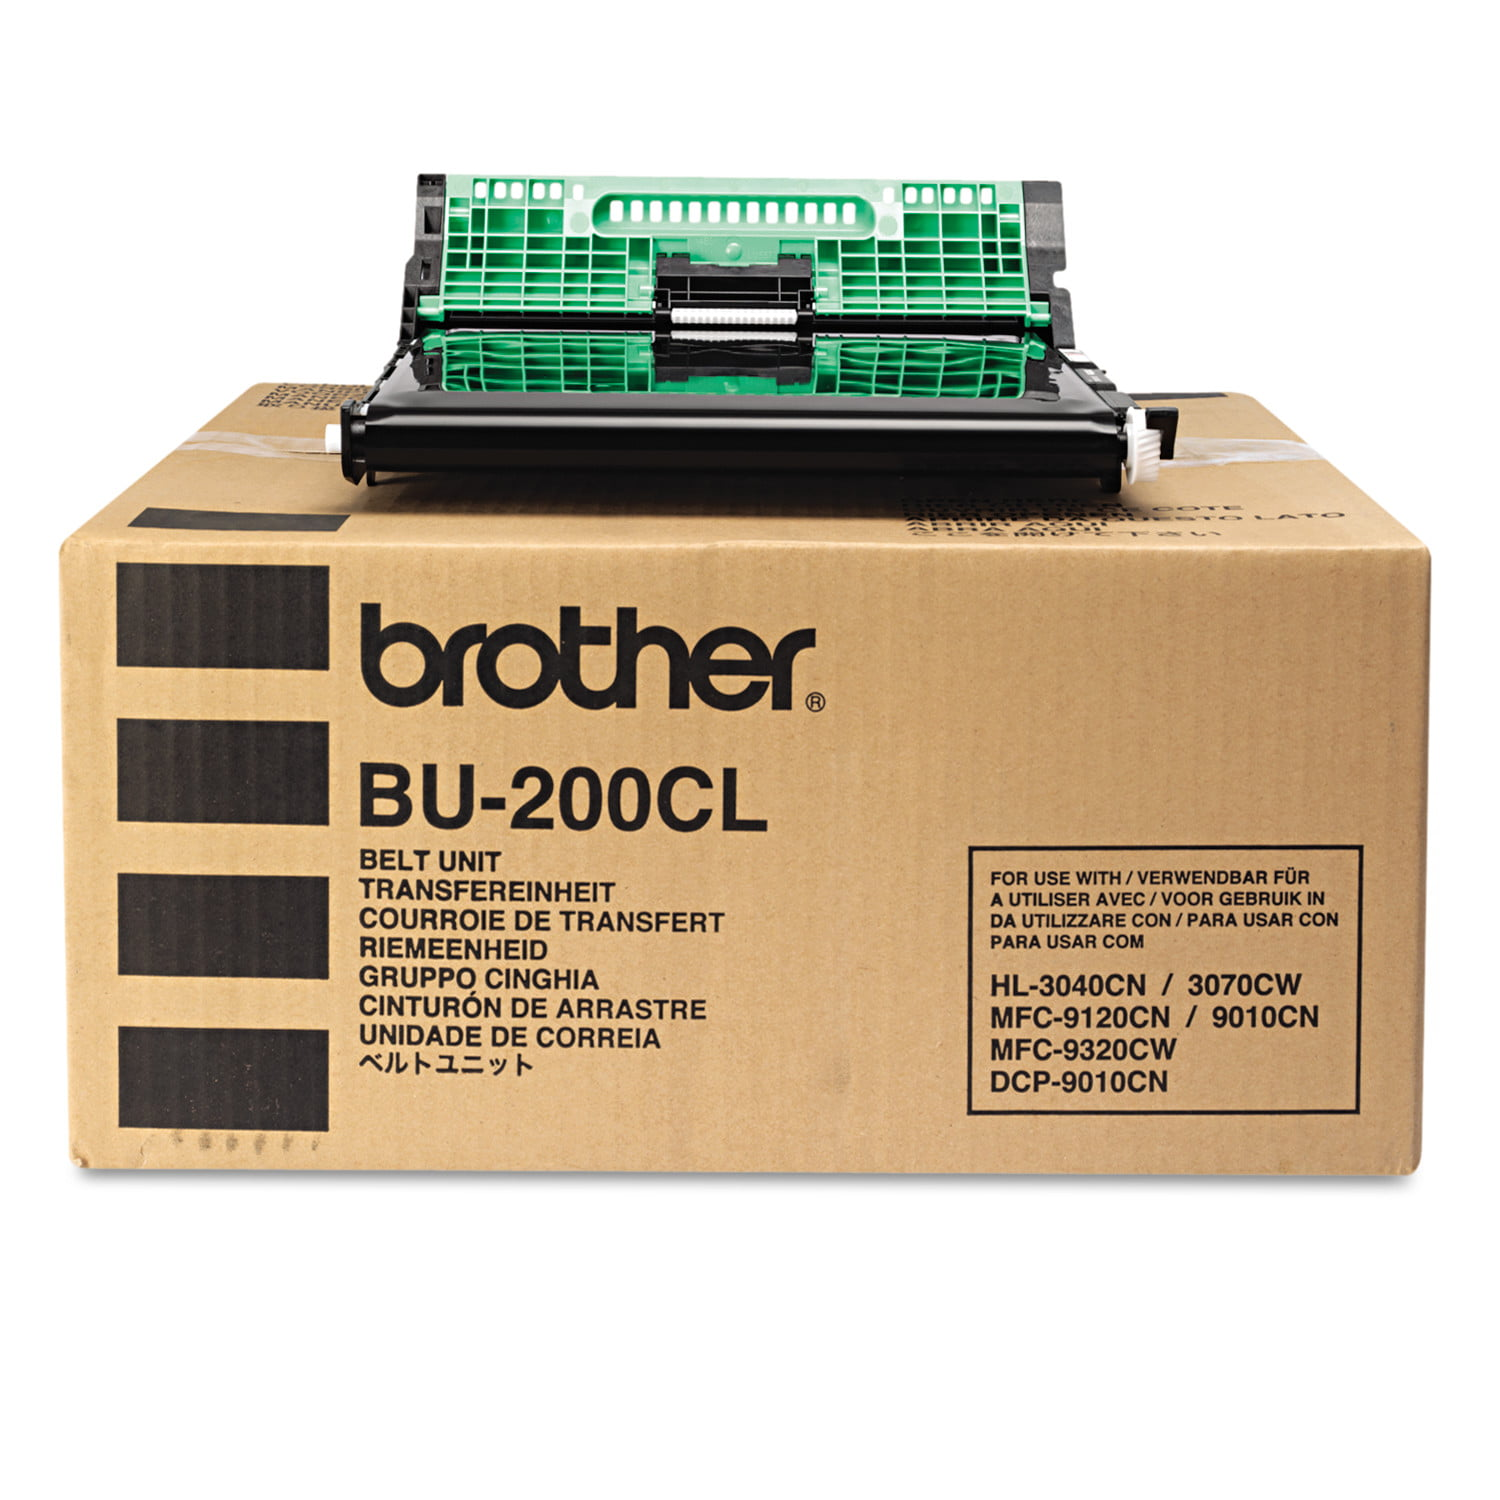 9325 Product Type: Supplies /& Accessories//Printer Consumables Print Belt Kit 9125 For Dcp 9010 3075 3070 Mfc 9120 Hl-3040 Brother Bu 200Cl 9320 3045